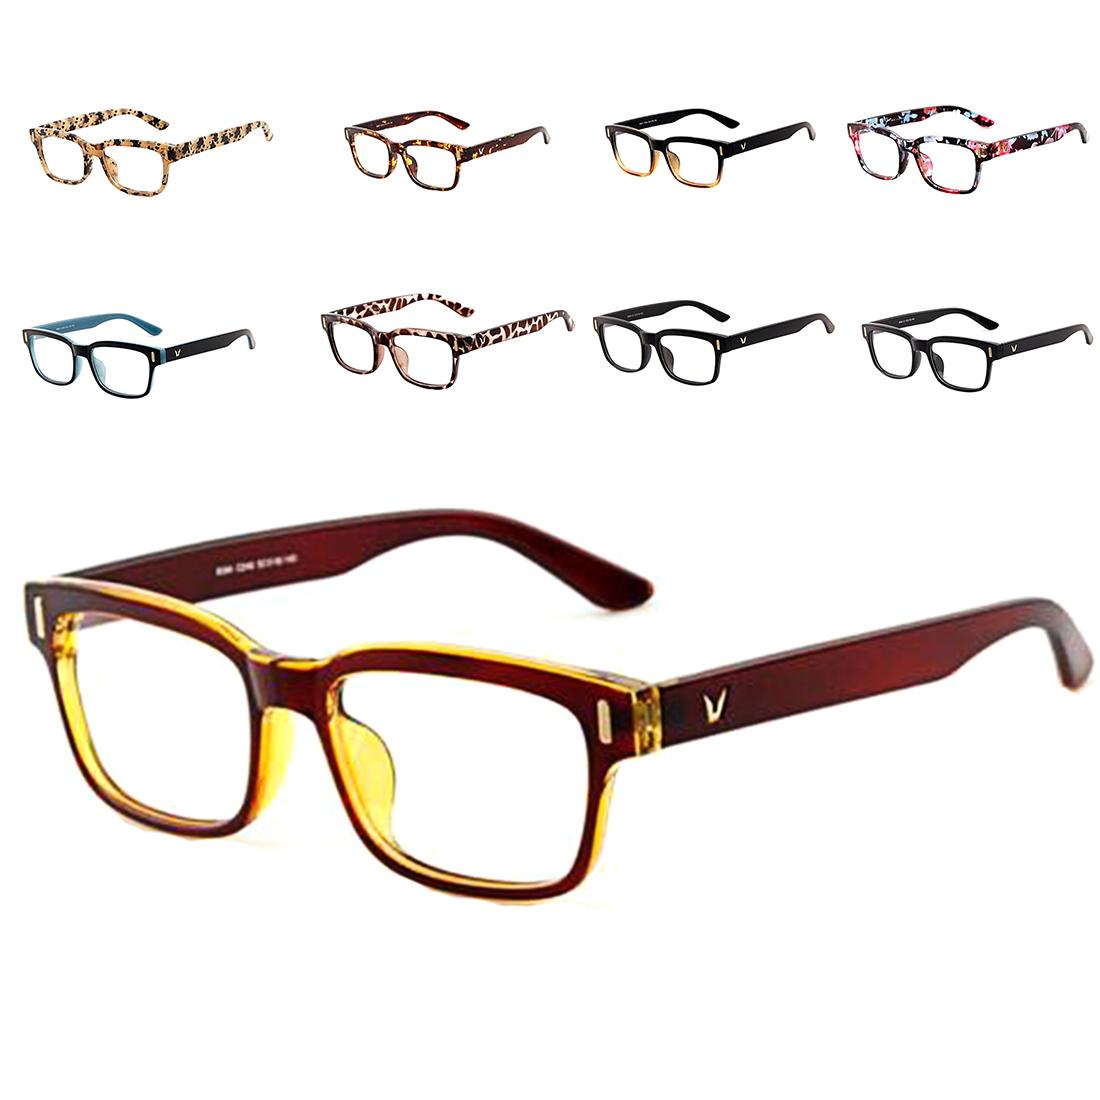 cd588bac0f4 2019 Wholesale Classic V Shaped Box Eye Glasses Frames Brand For Men New  Women Computer Frames Eyewear Vintage Armacao Oculos De Grau From Jilihua